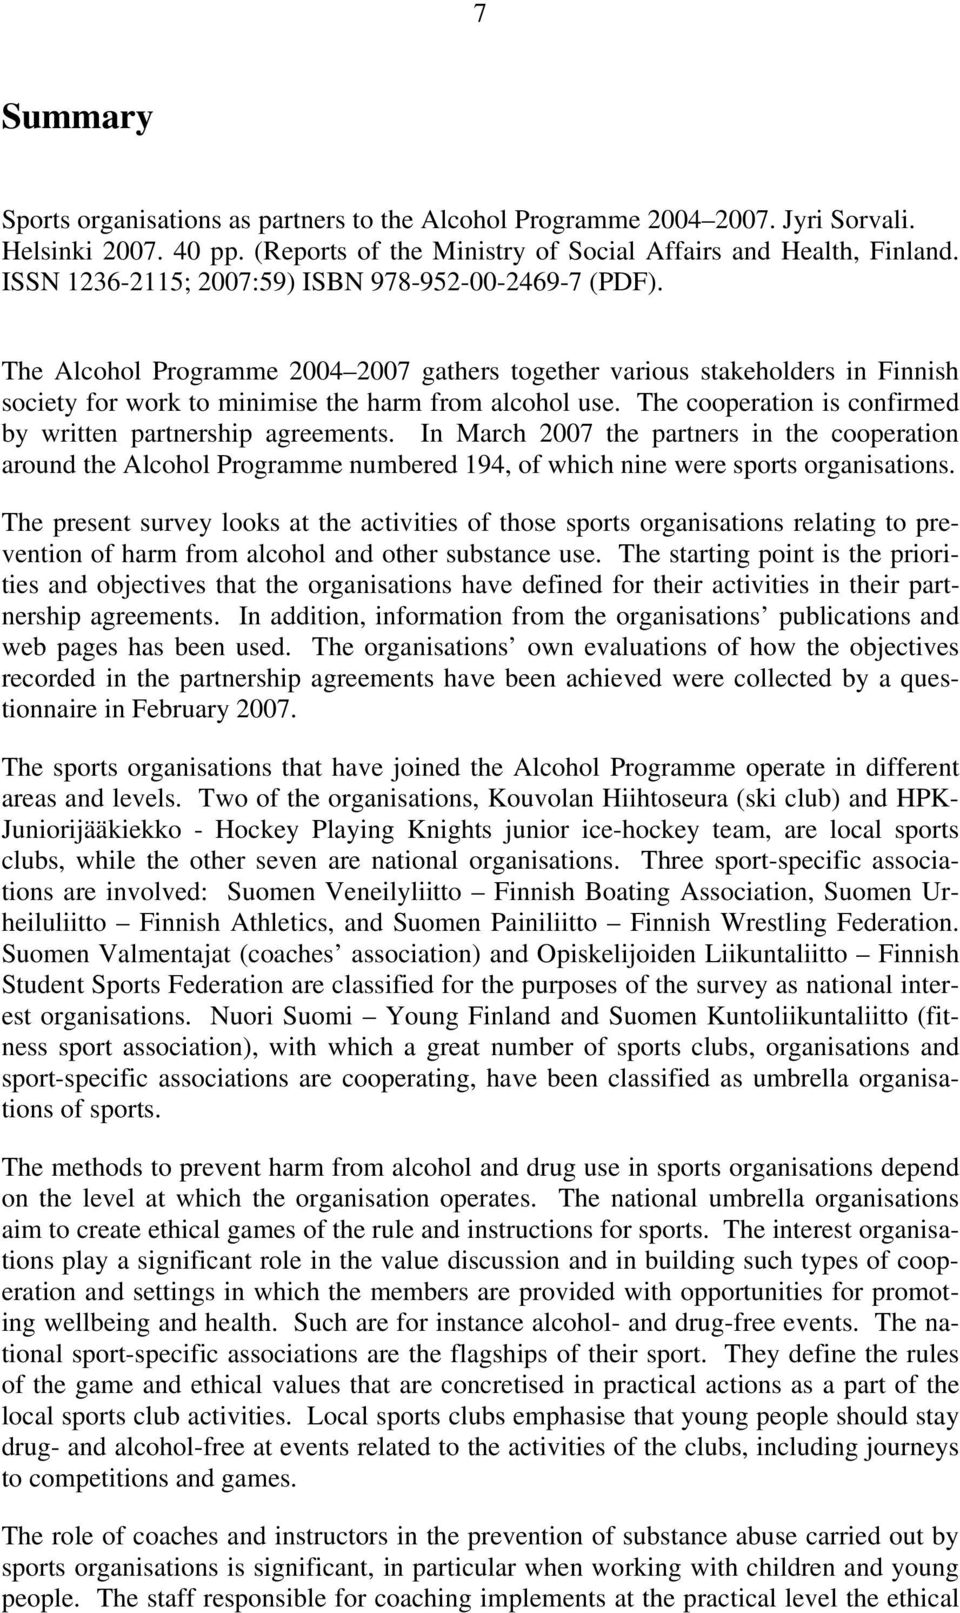 The cooperation is confirmed by written partnership agreements. In March 2007 the partners in the cooperation around the Alcohol Programme numbered 194, of which nine were sports organisations.